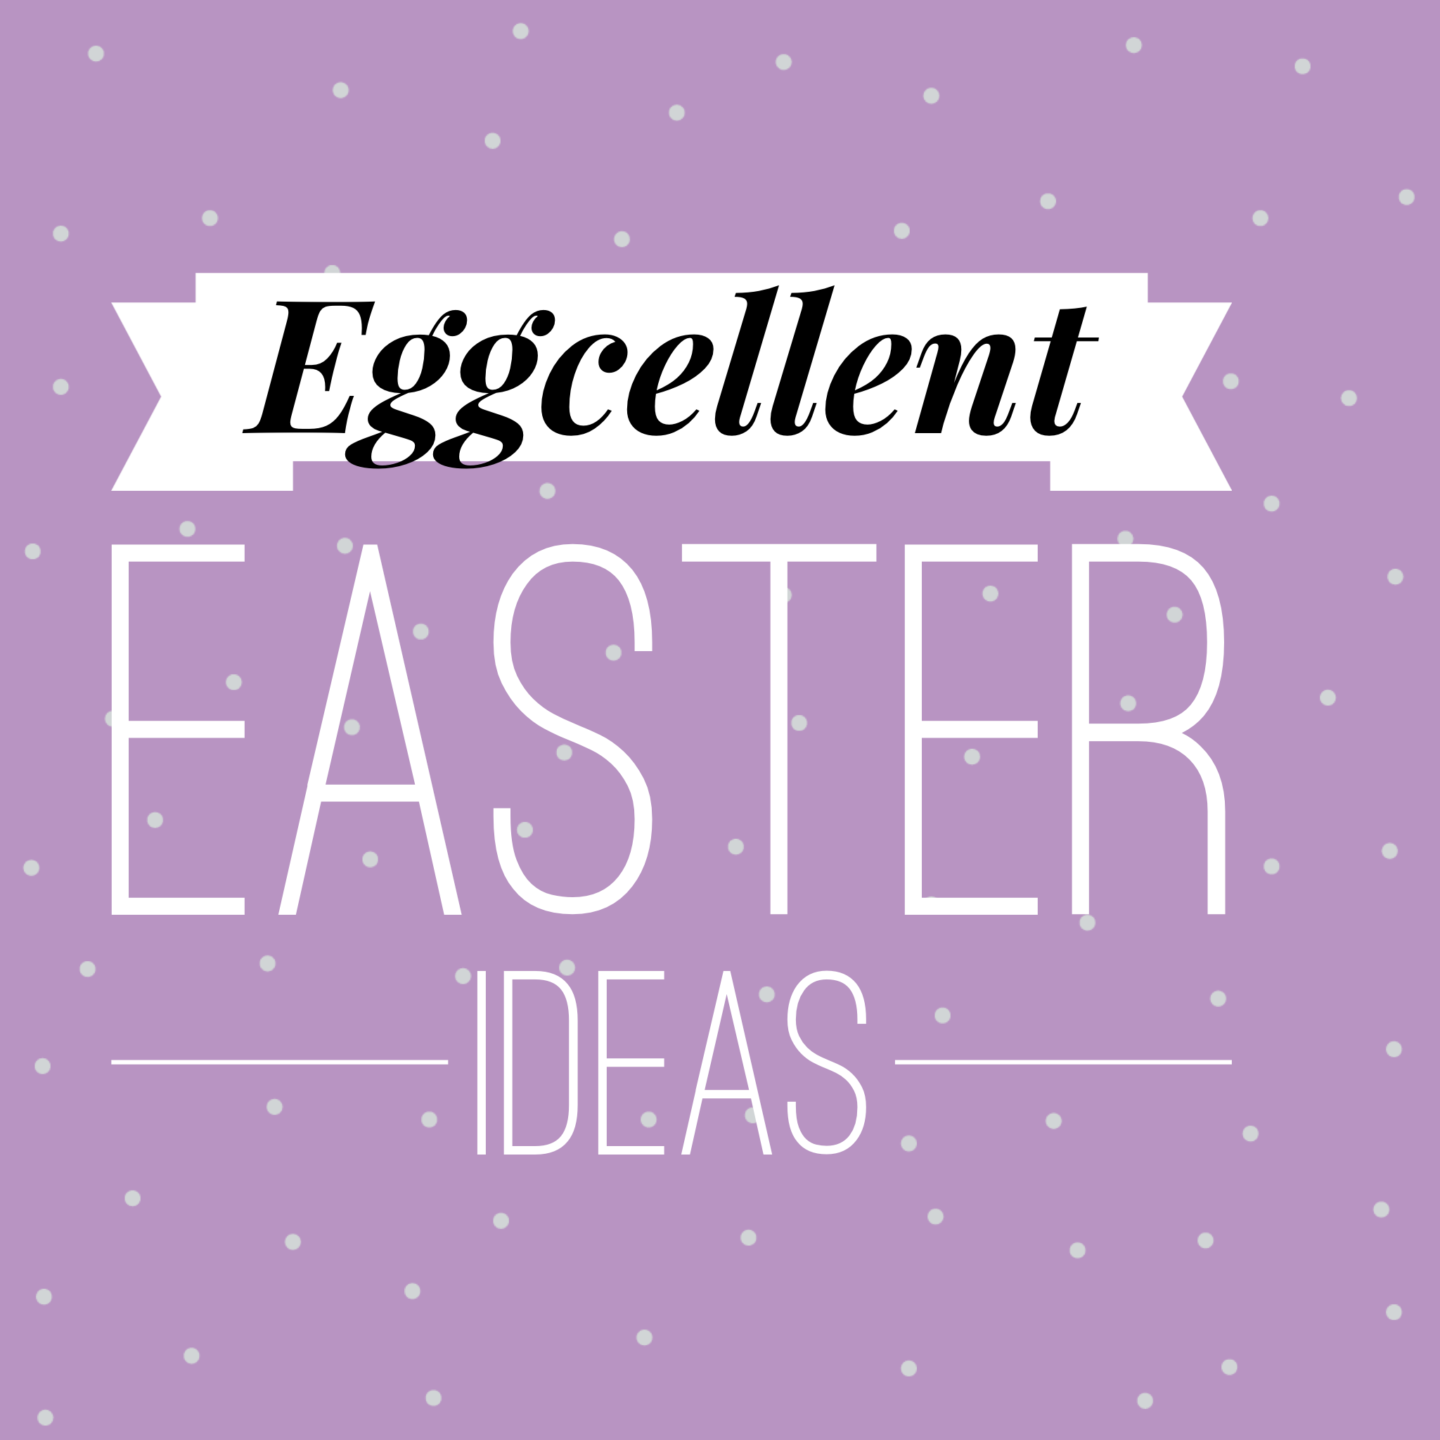 Eggcellent Easter Ideas